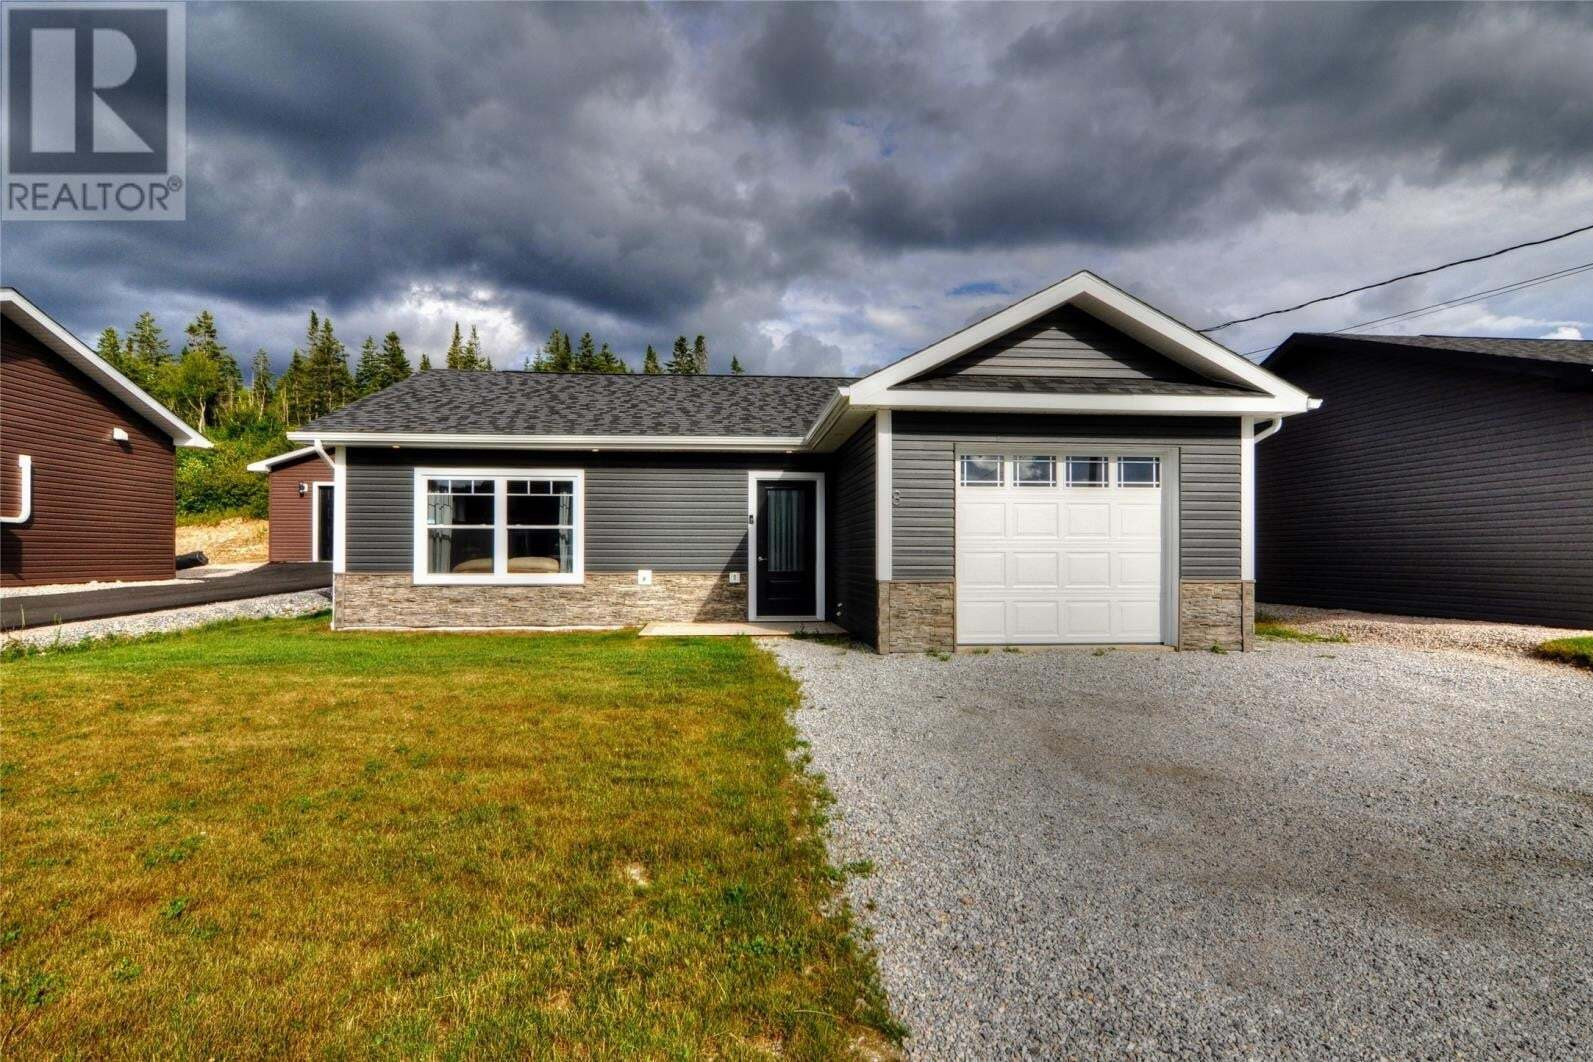 House for sale at 8 Albert St Massey Drive Newfoundland - MLS: 1220701